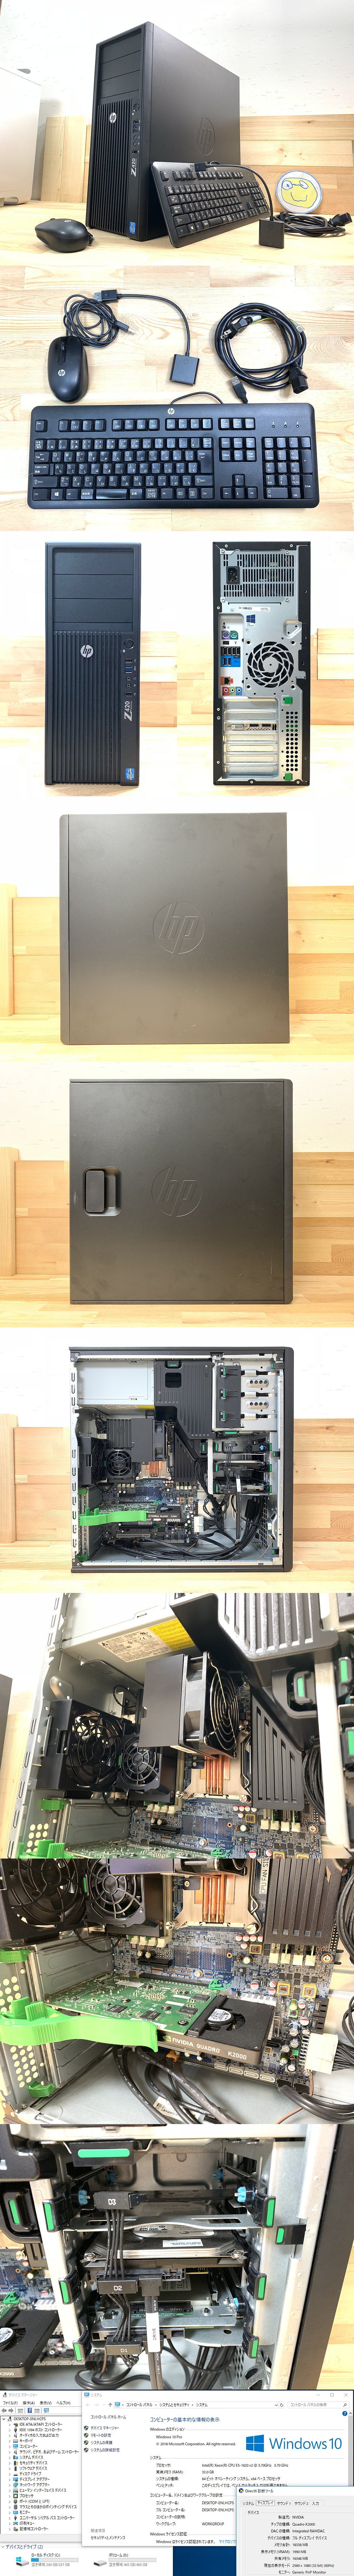 prompt decision ]HP Z420 Workstation E3F75EC#ABJ Xeon E5-1620v2 3 70